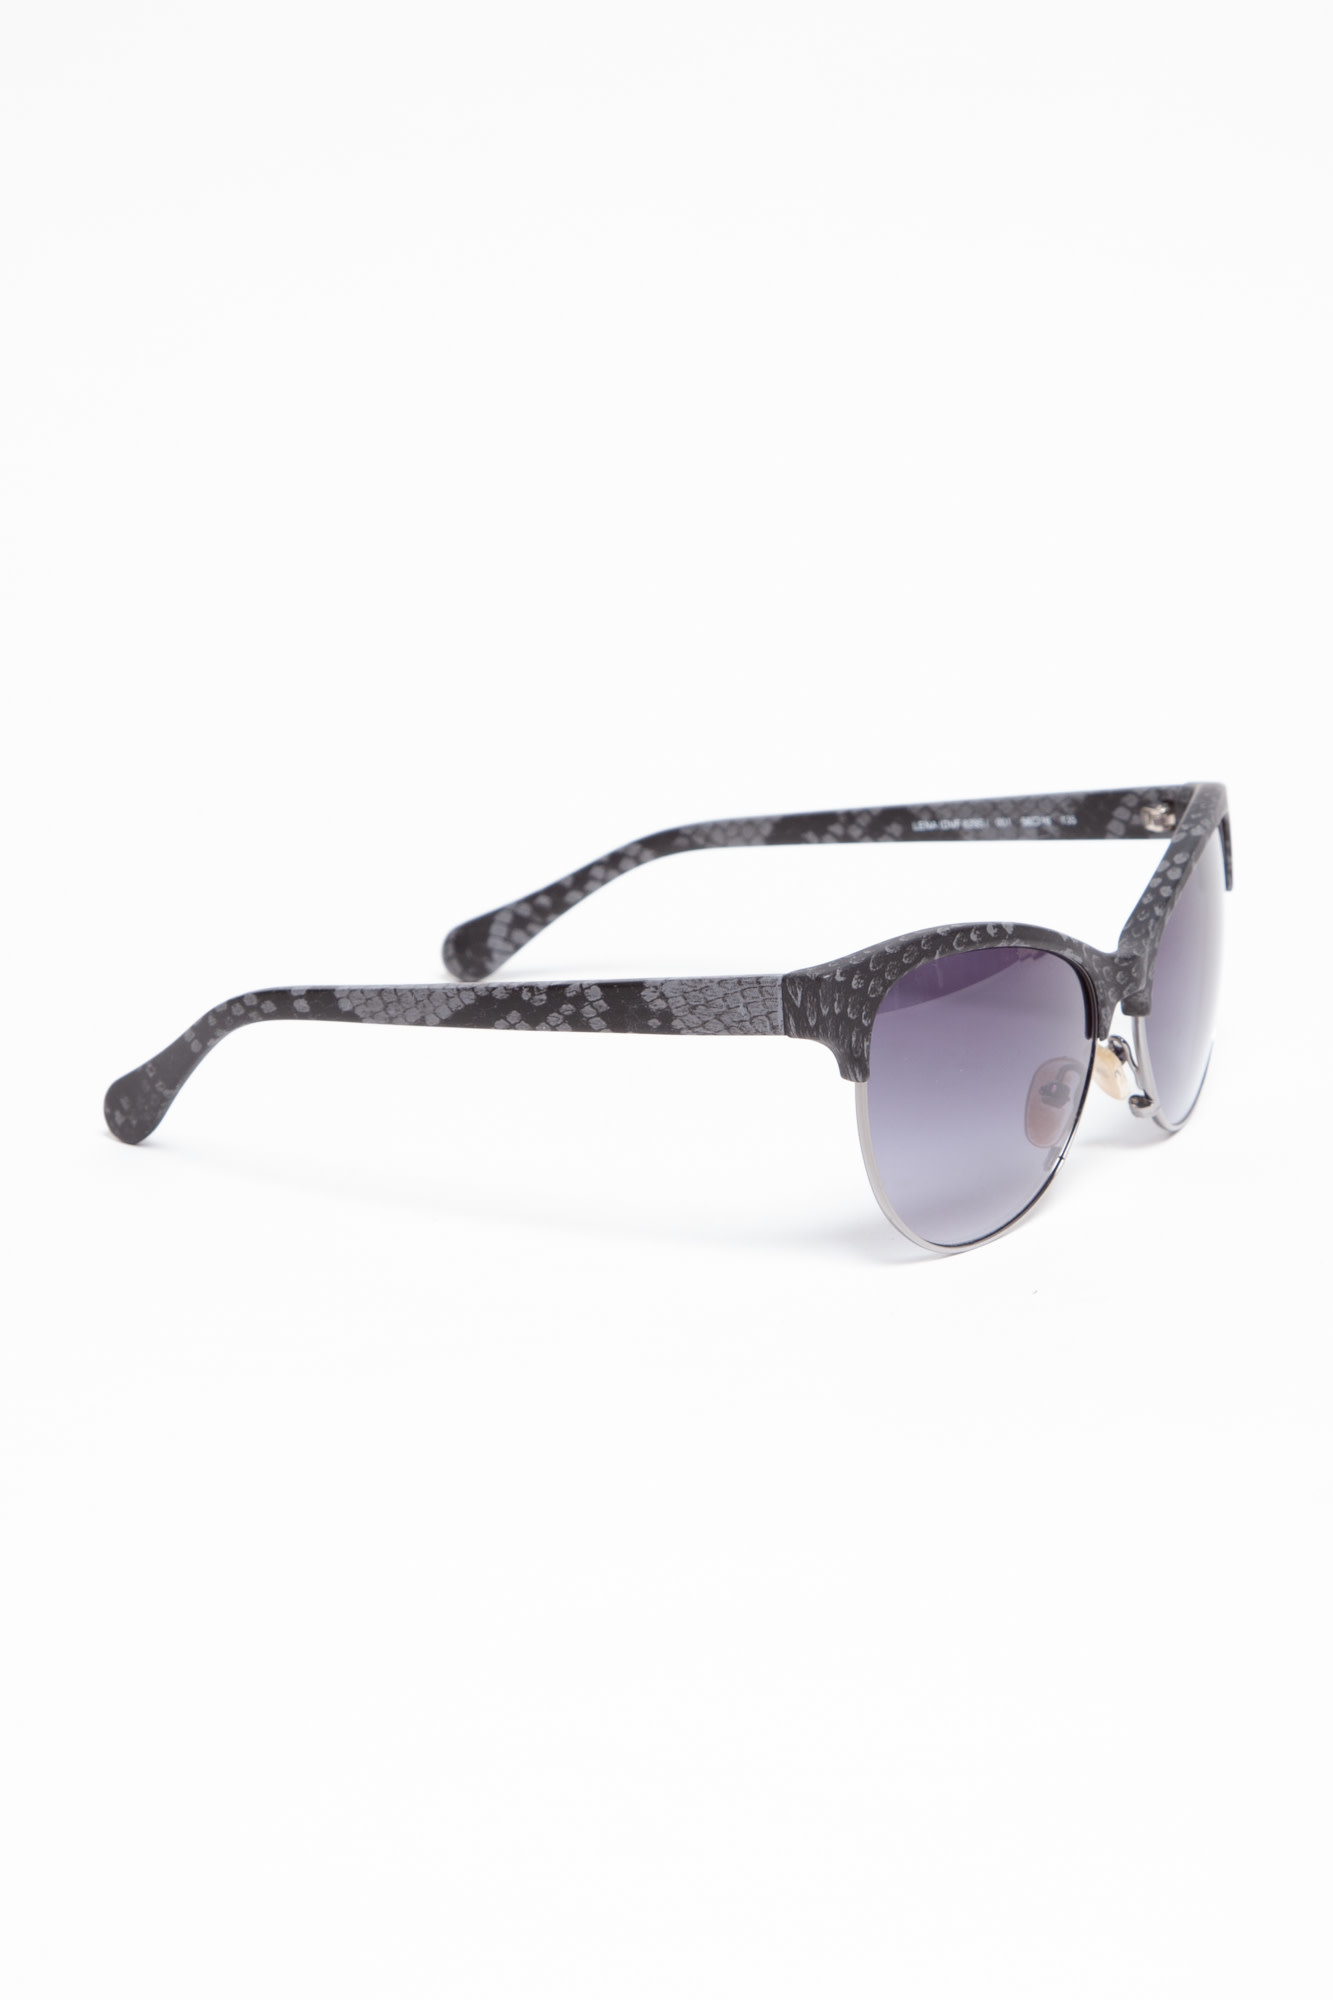 Diane von Furstenberg  DARK GRAY SCALE SUNGLASSES